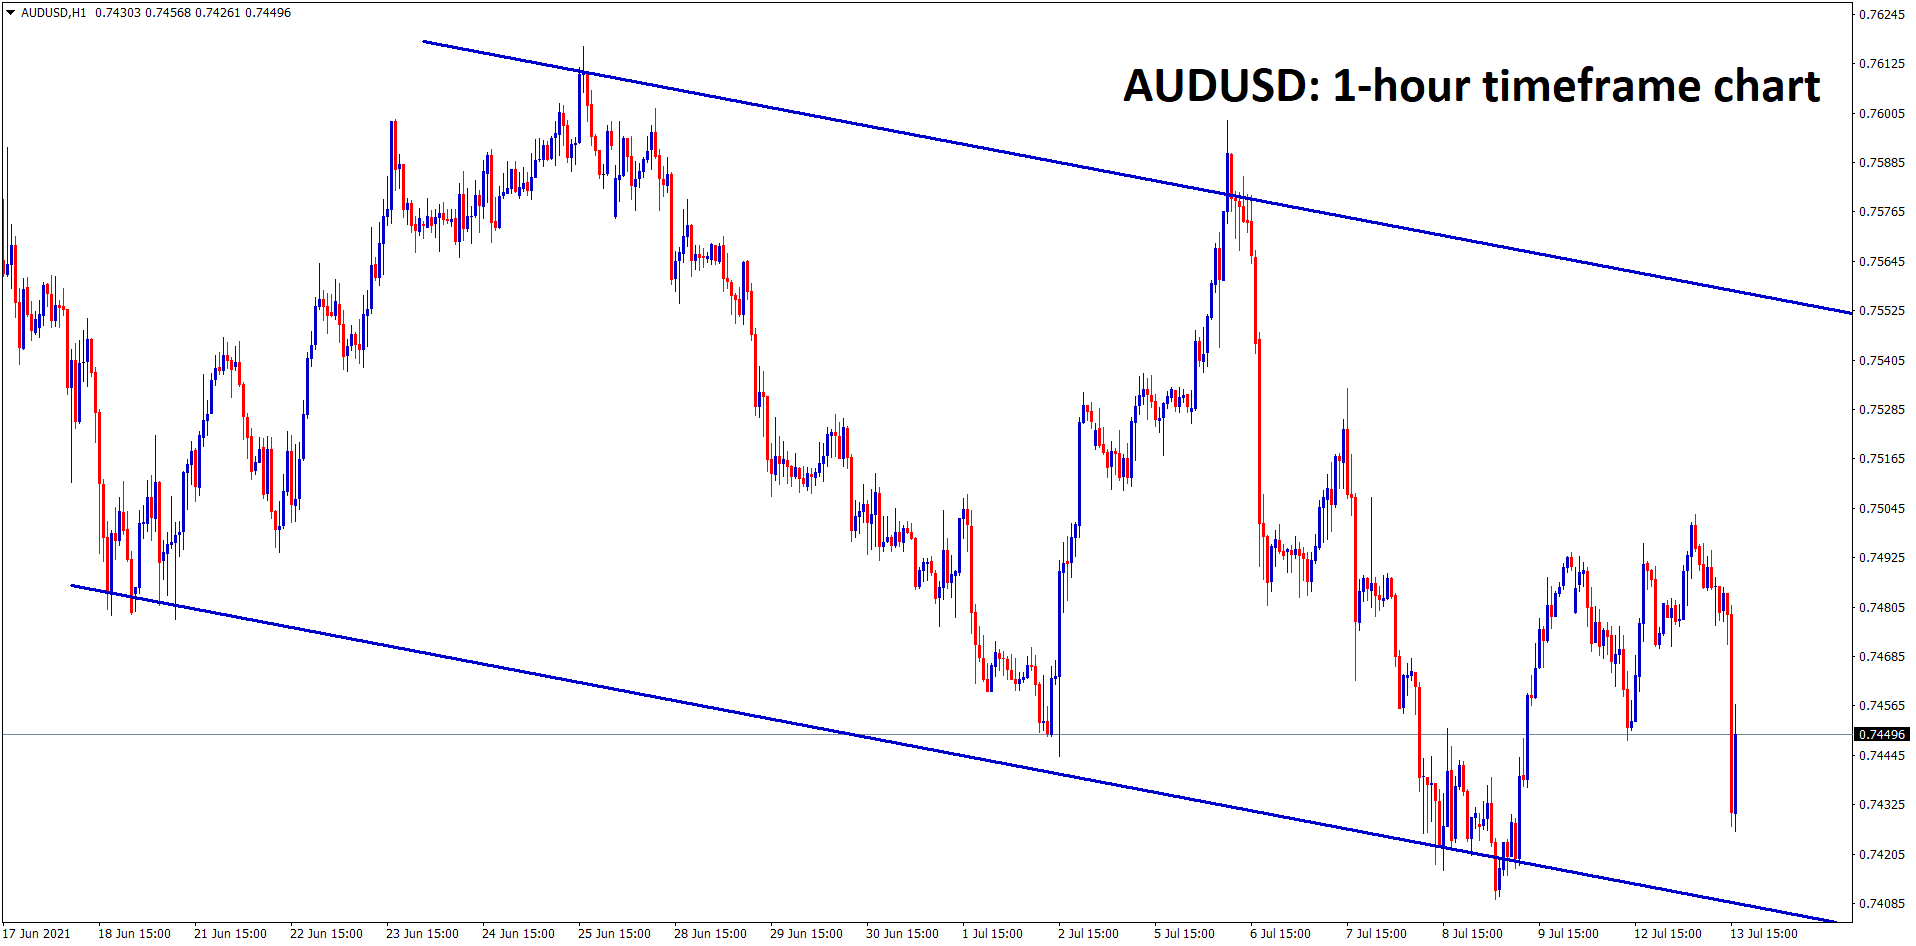 AUDUSD is moving in a downtrend price range